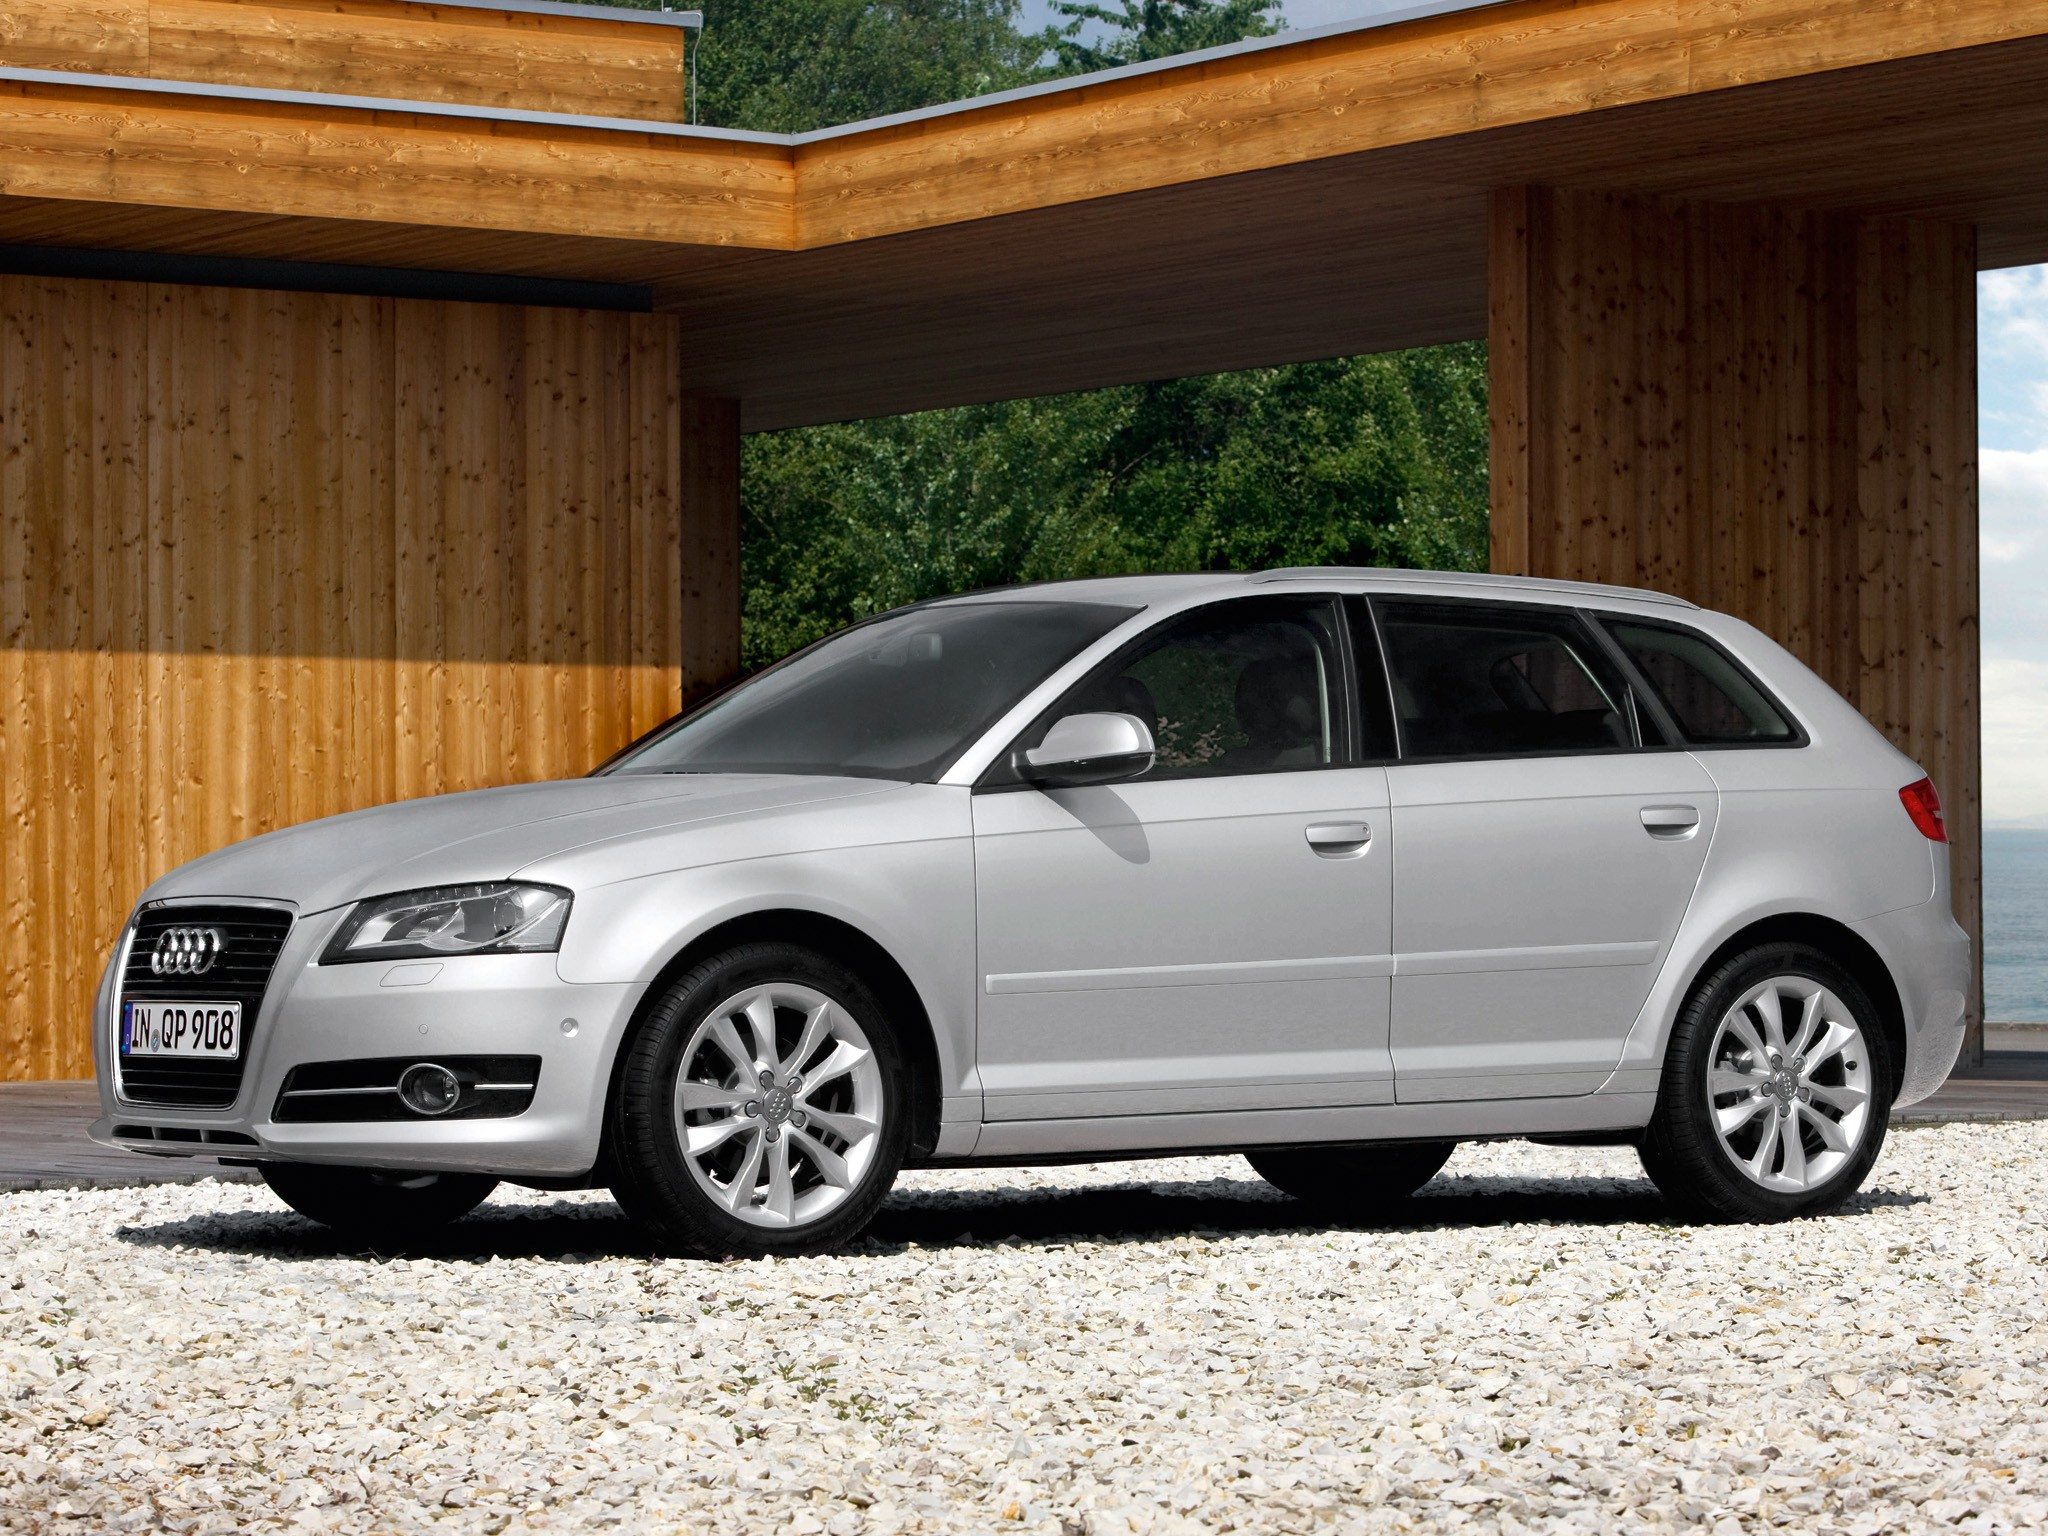 2011 audi a3 new cars car reviews car shows car photos. Black Bedroom Furniture Sets. Home Design Ideas